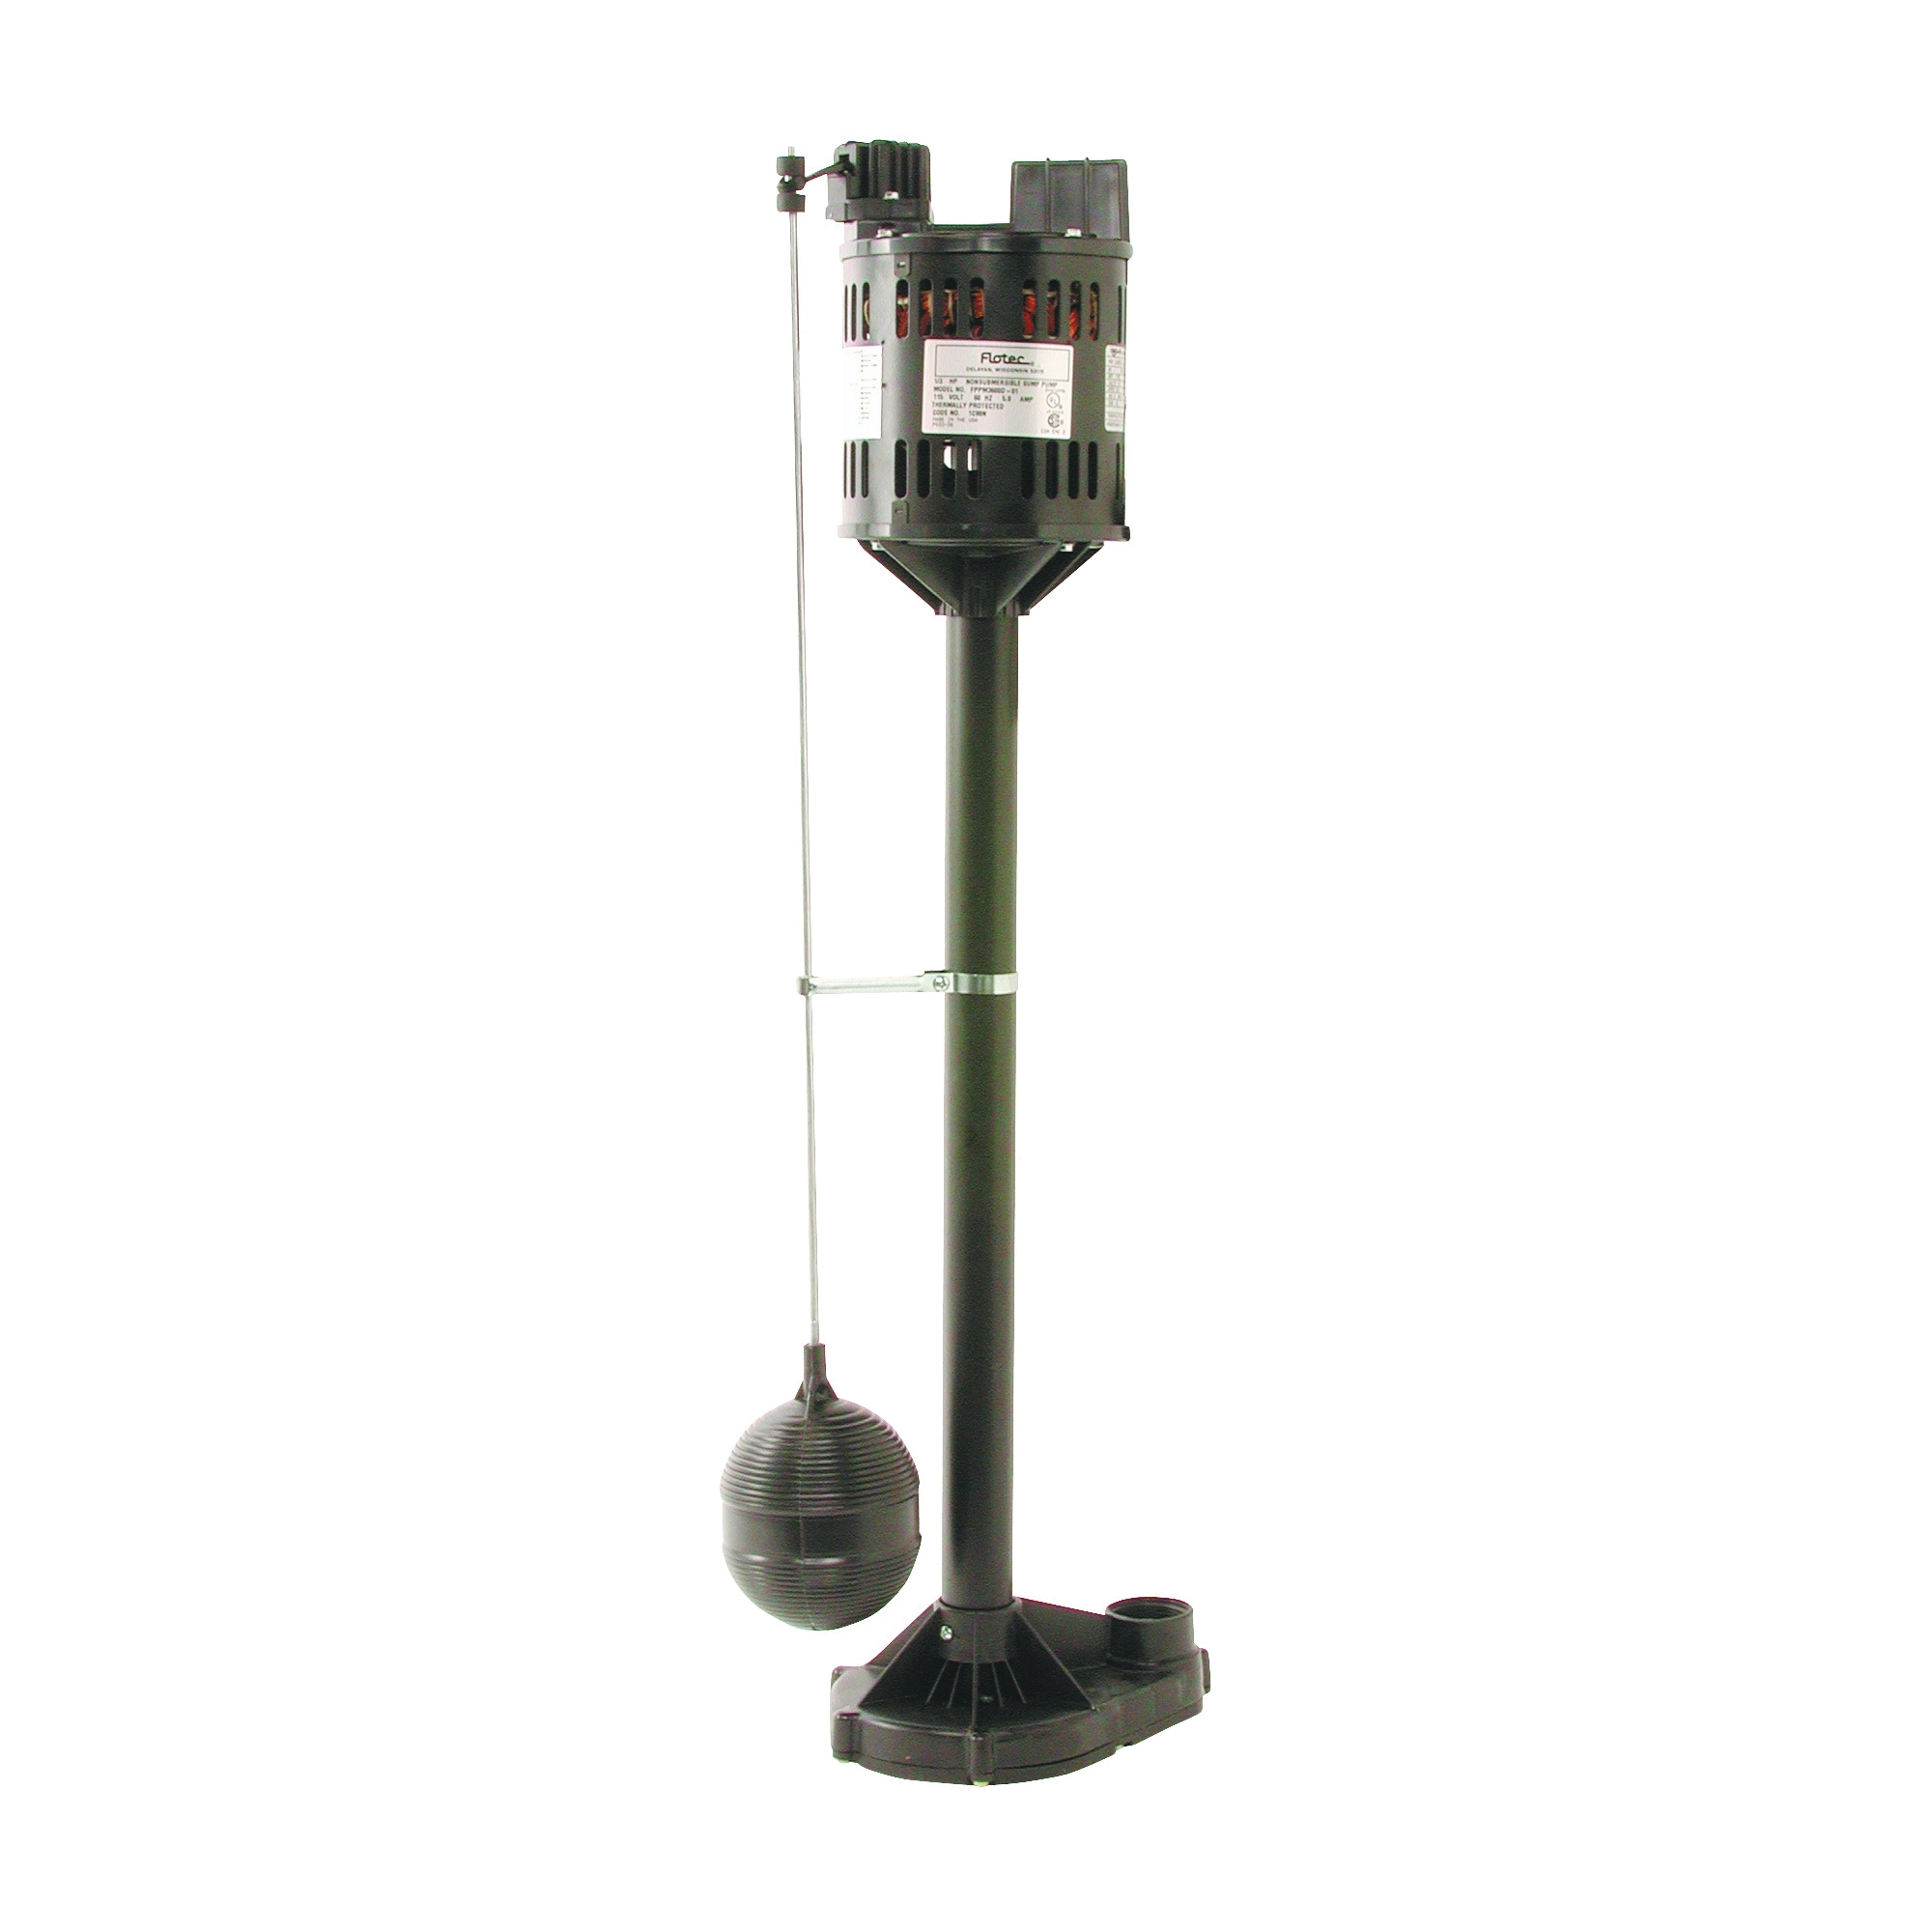 Picture of Flotec FPPM3600D-08 Sump Pump with Float Switch, 3.5 A, 115 V, 0.33 hp, 1-1/4 in Outlet, 3000 gph, Thermoplastic